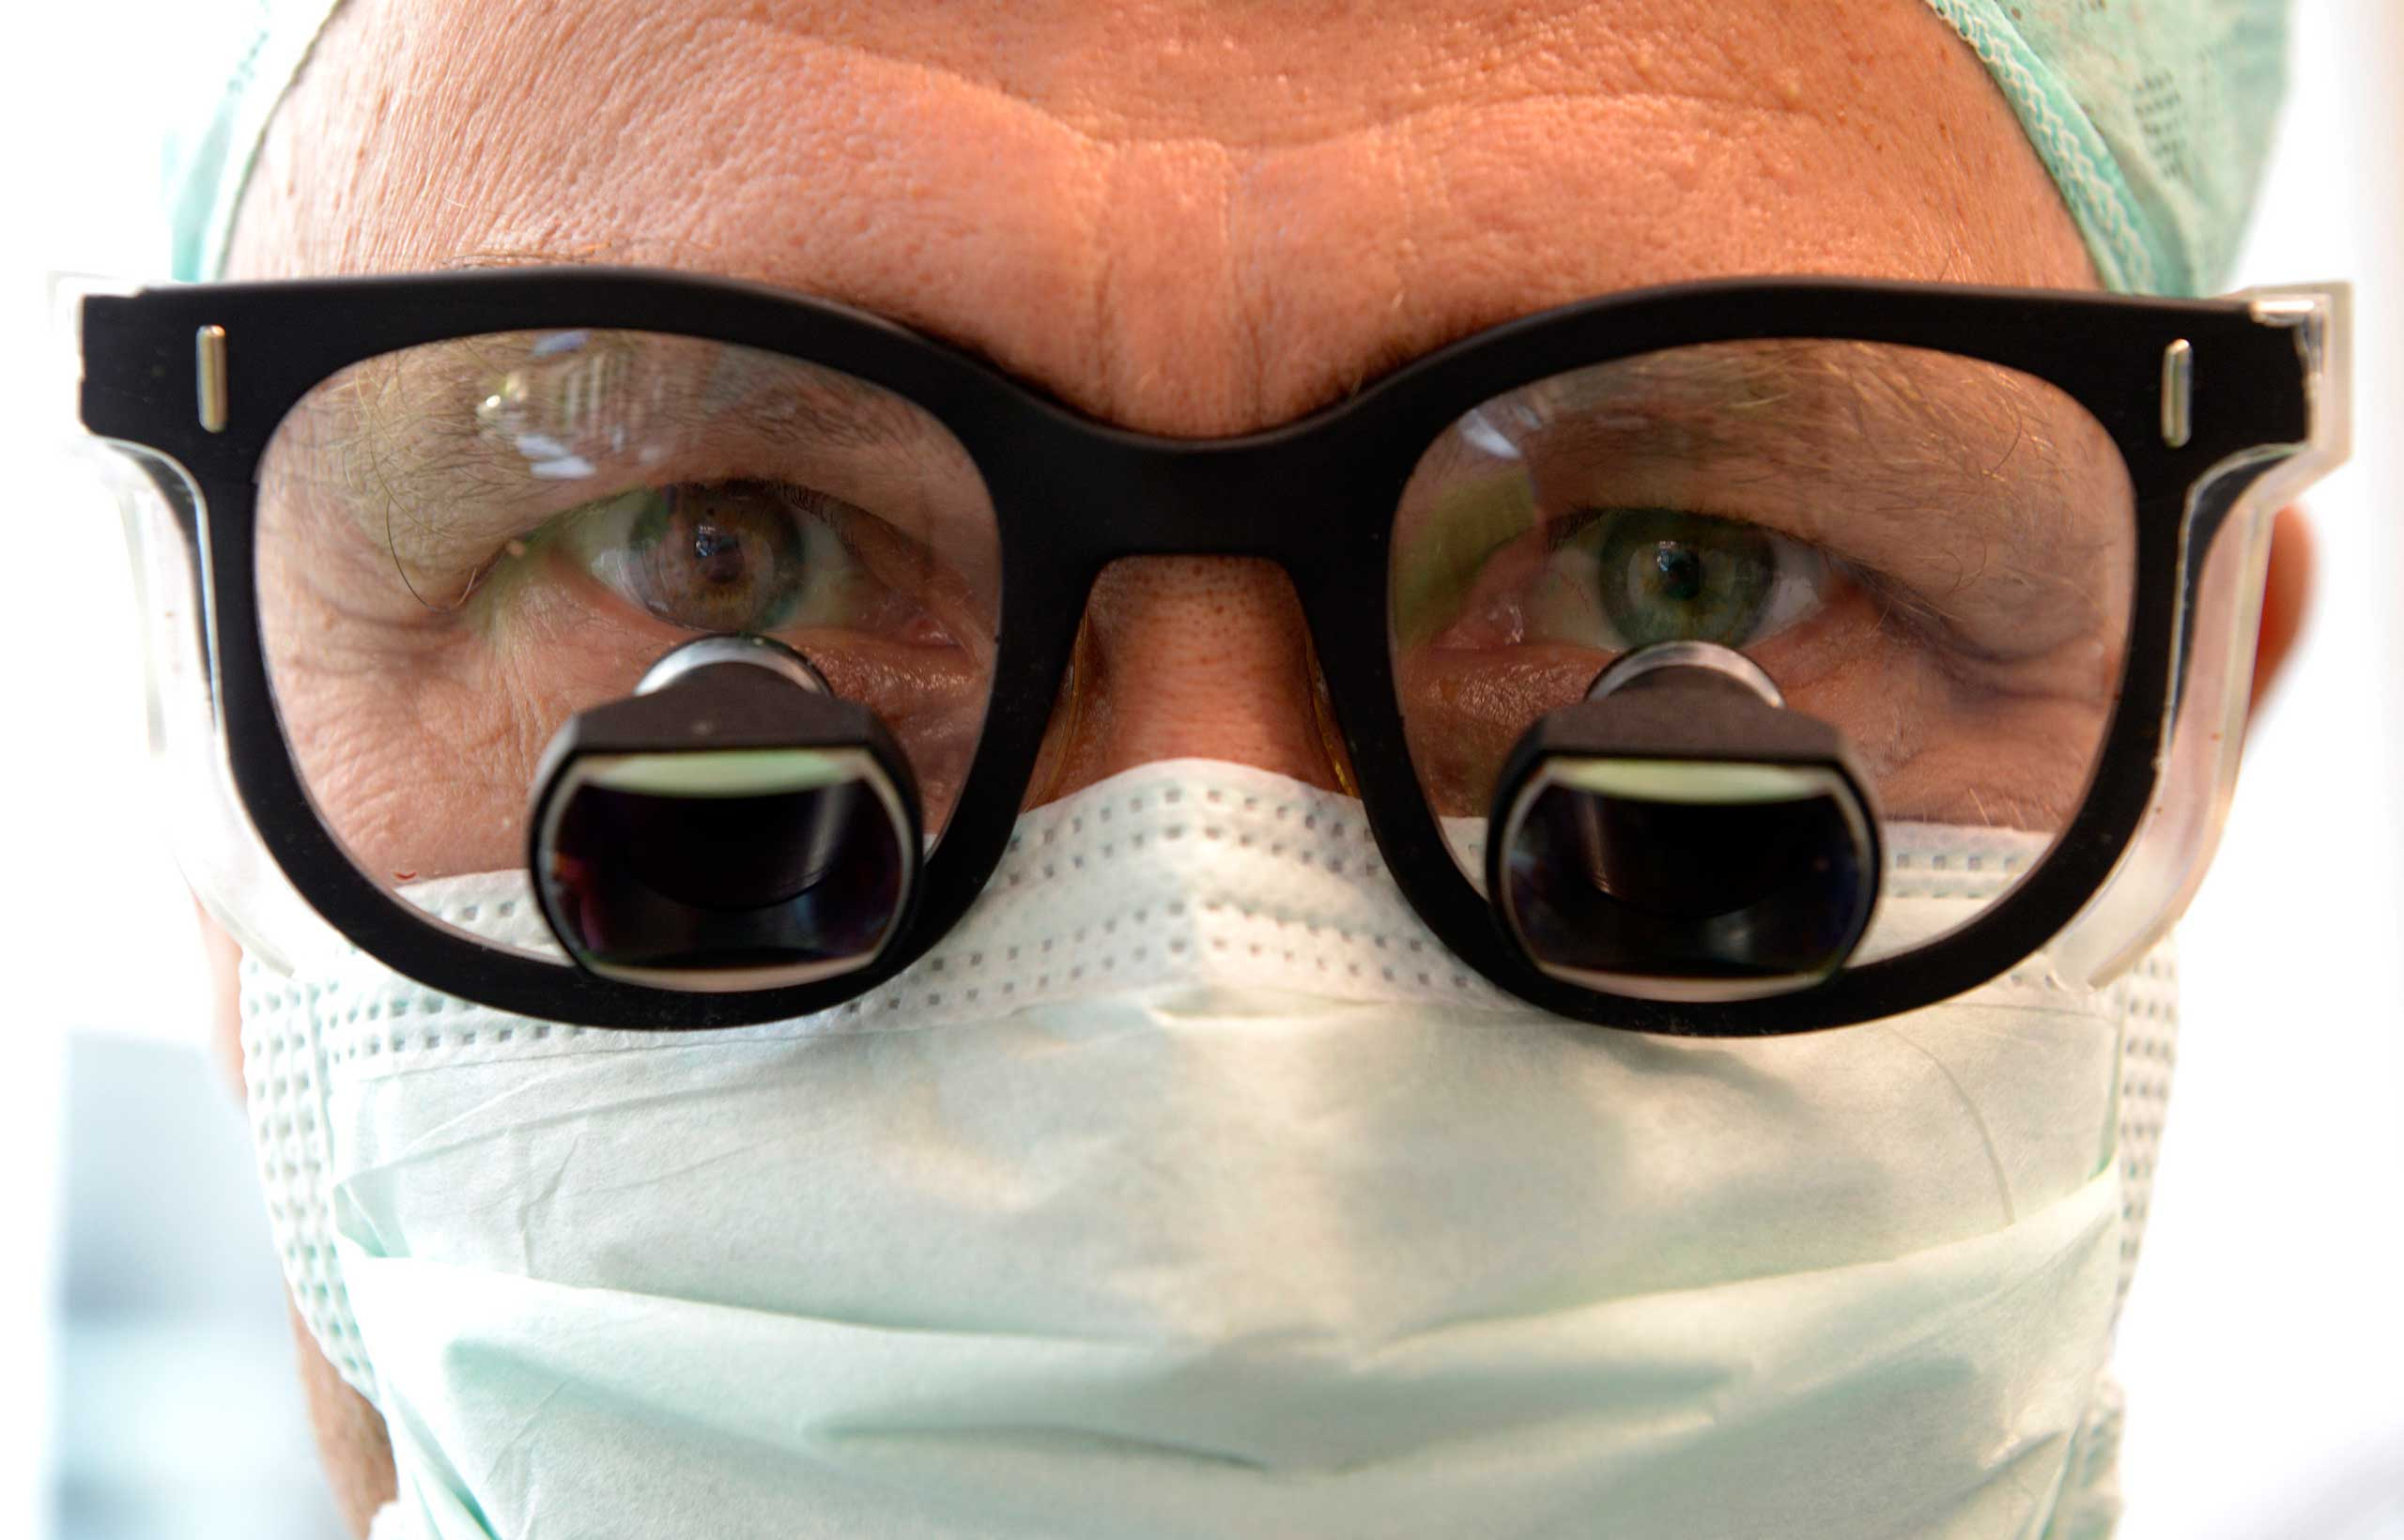 <strong>2013</strong>                                                                      Professor Karl Oldhafer, chief physician of general and visceral surgery at the Asklepios Hospital Hamburg-Barmbek, before liver surgery. Oldhafer used  augmented reality, which allowed the liver to be filmed with an iPad and overlaid during the operation with virtual 3D models reconstructed from the real organ. This procedure helped locate critical structures such as tumors and vessels and was expected to improve the quality of transferring pre-operational resection plans into actual surgery.